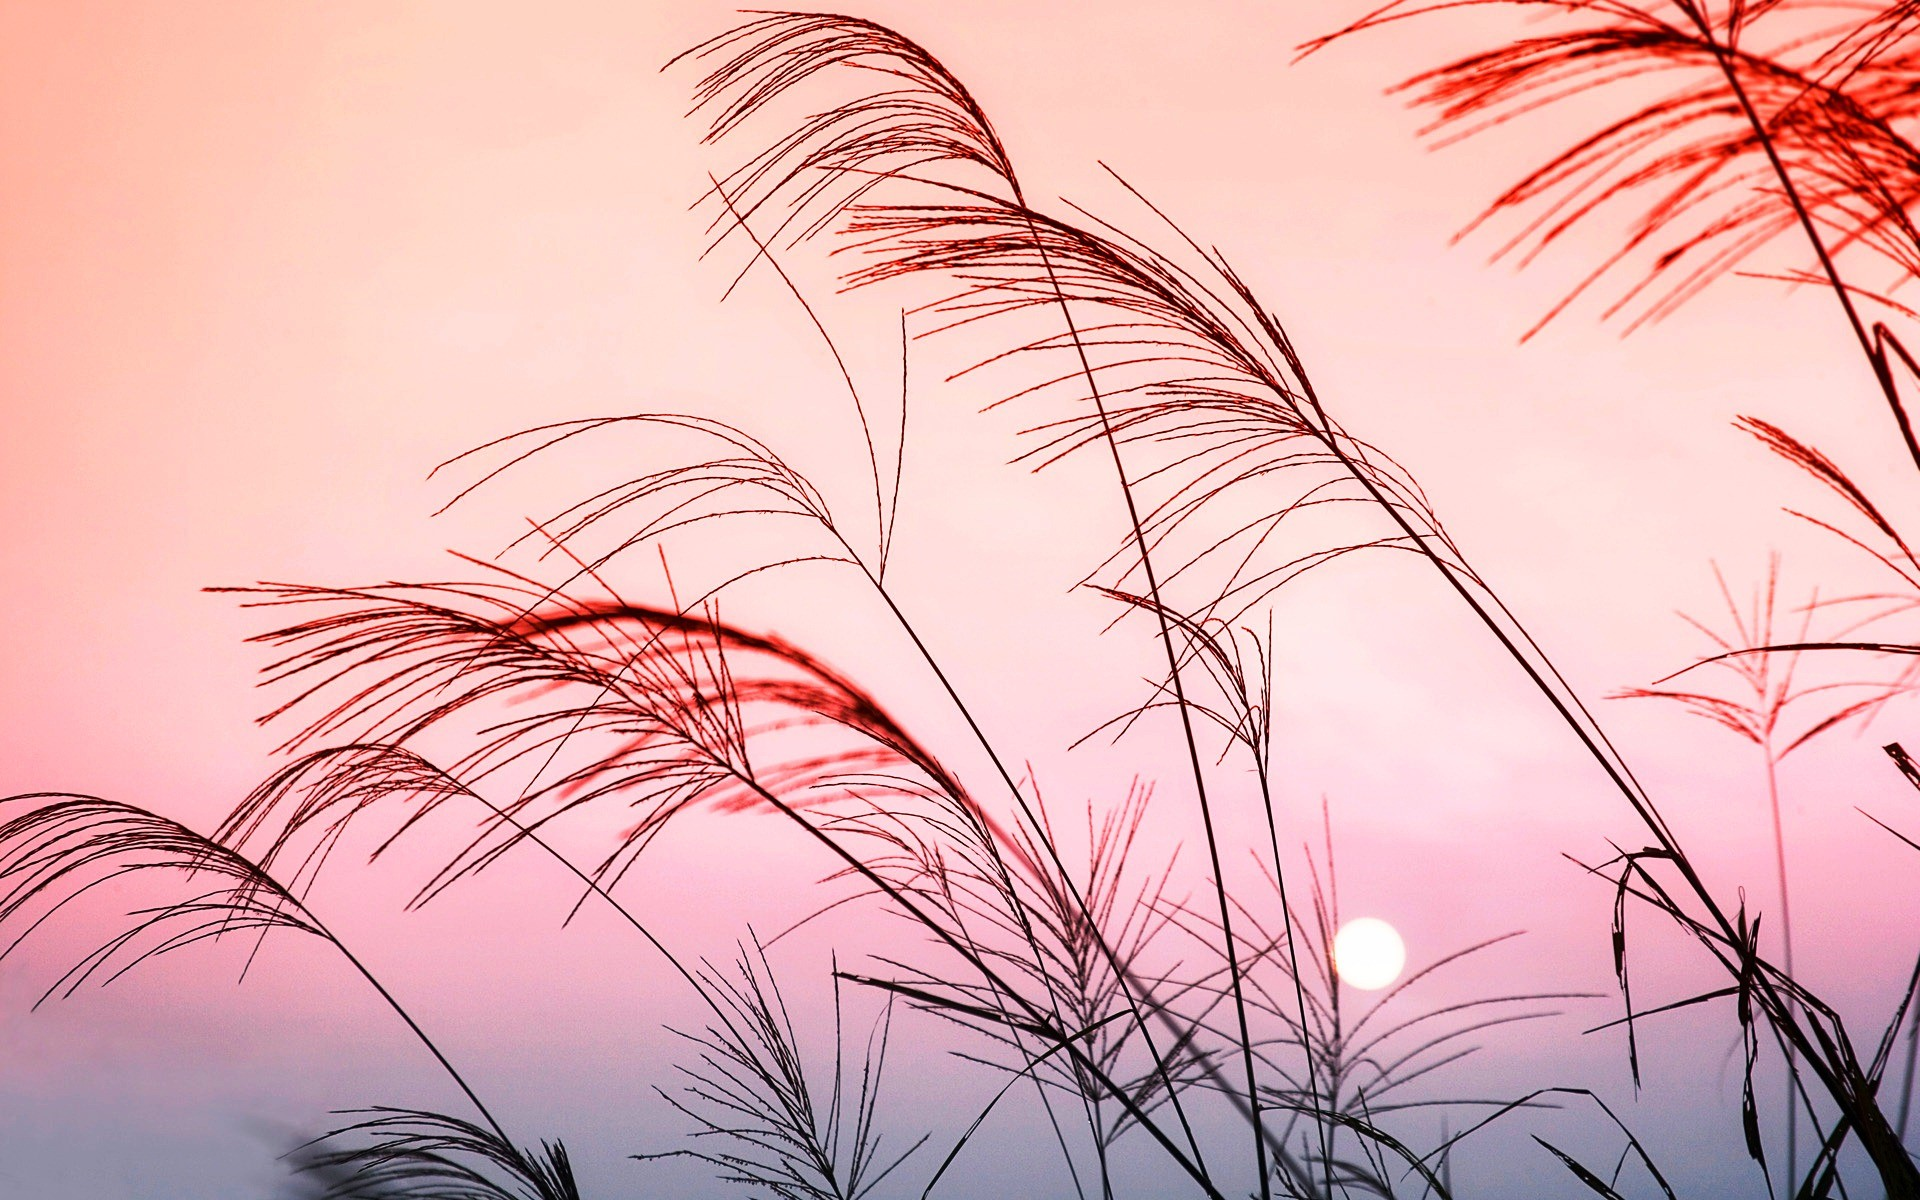 Hd wallpapers and background images. 247 Pastel HD Wallpapers | Background Images - Wallpaper ...